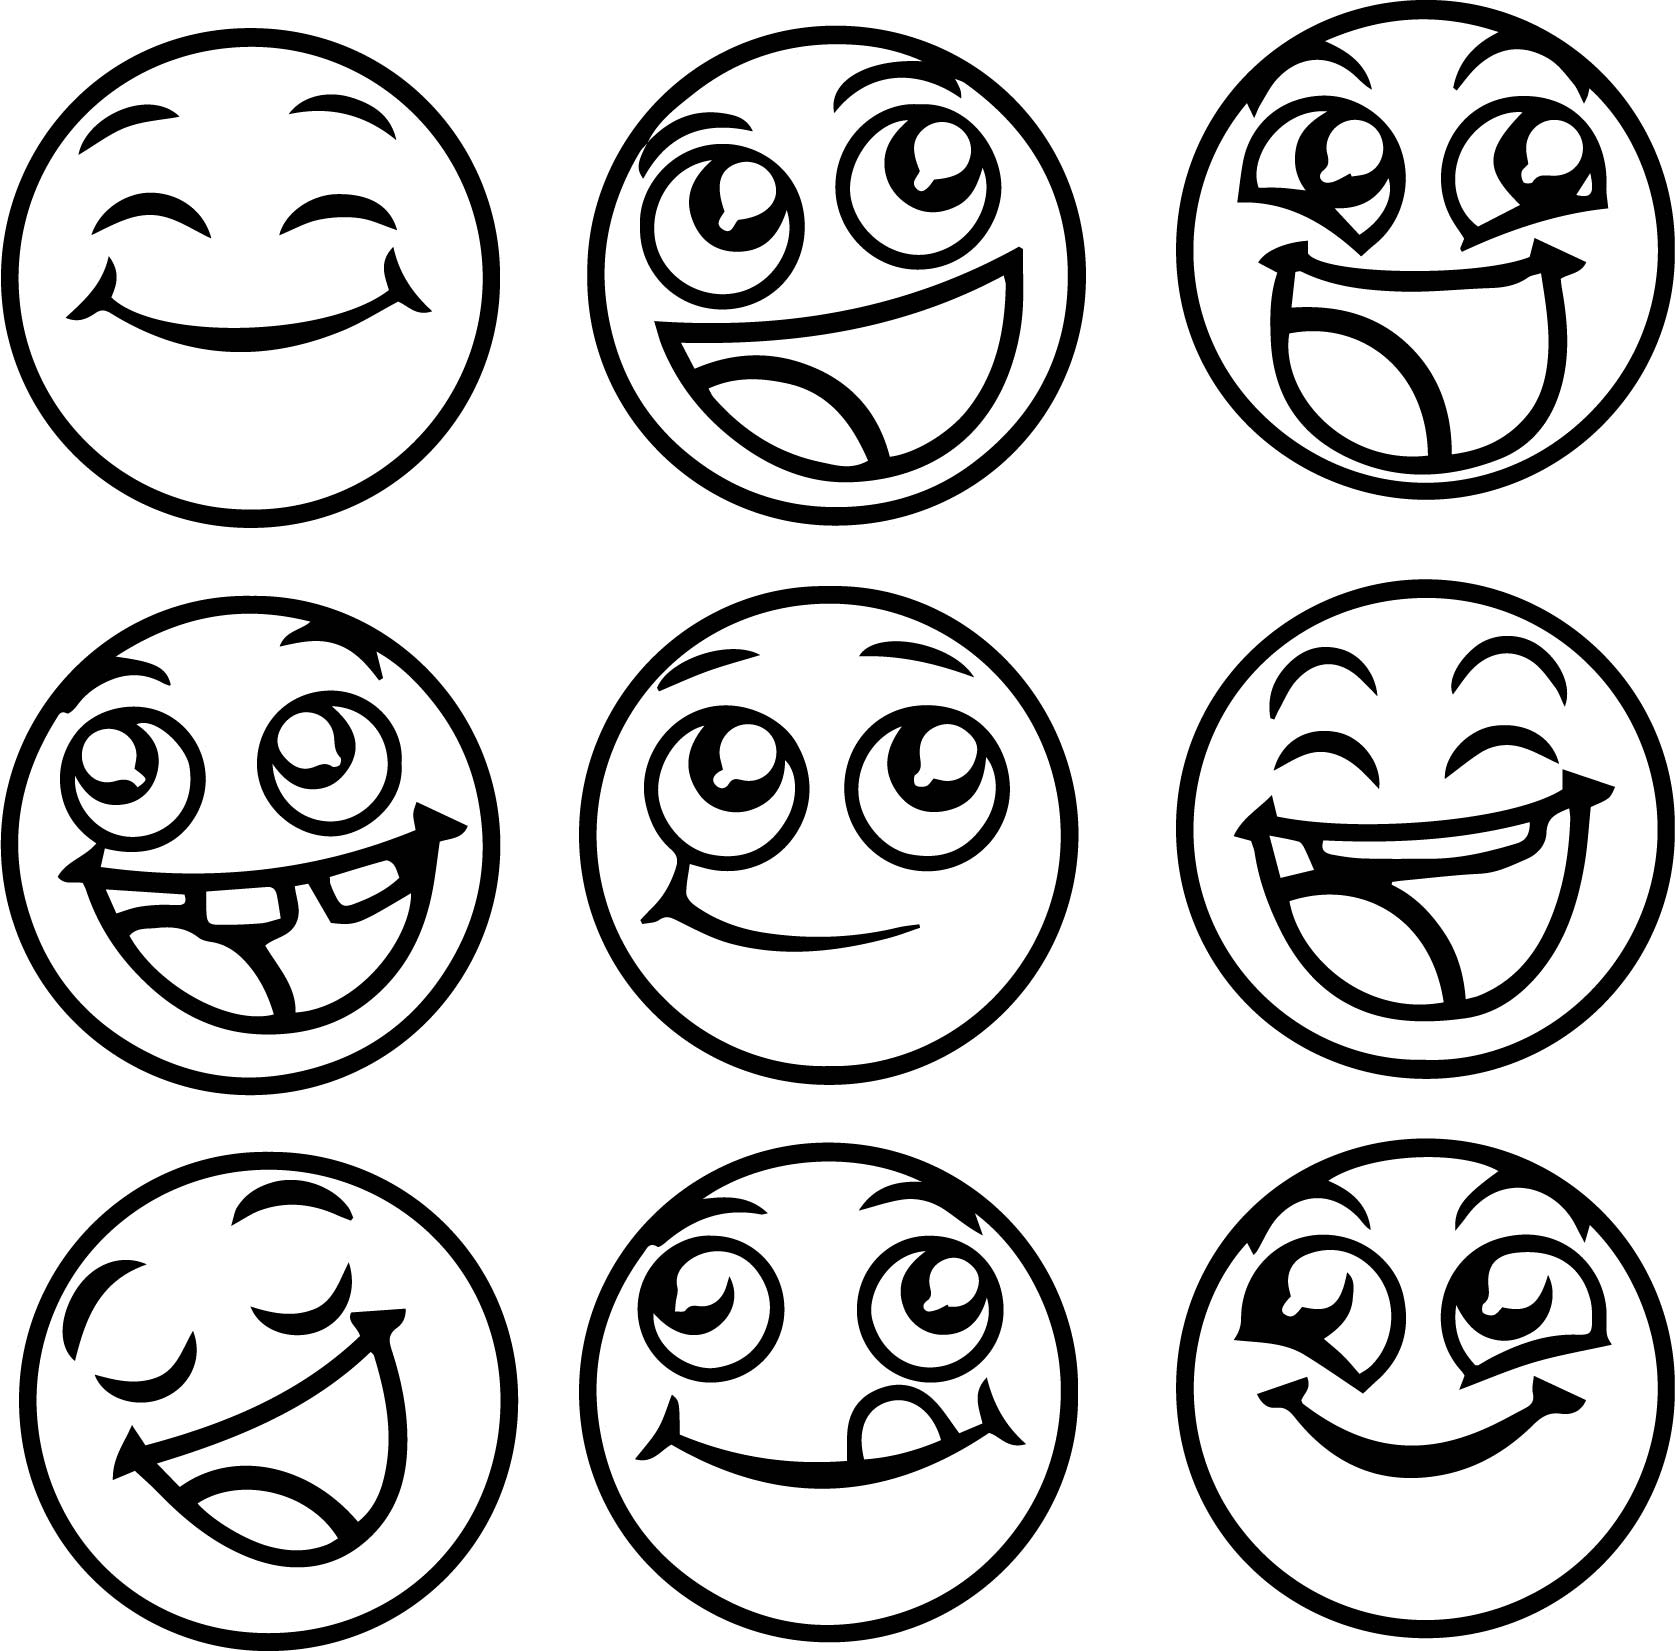 Happy Emoticons All Coloring Page